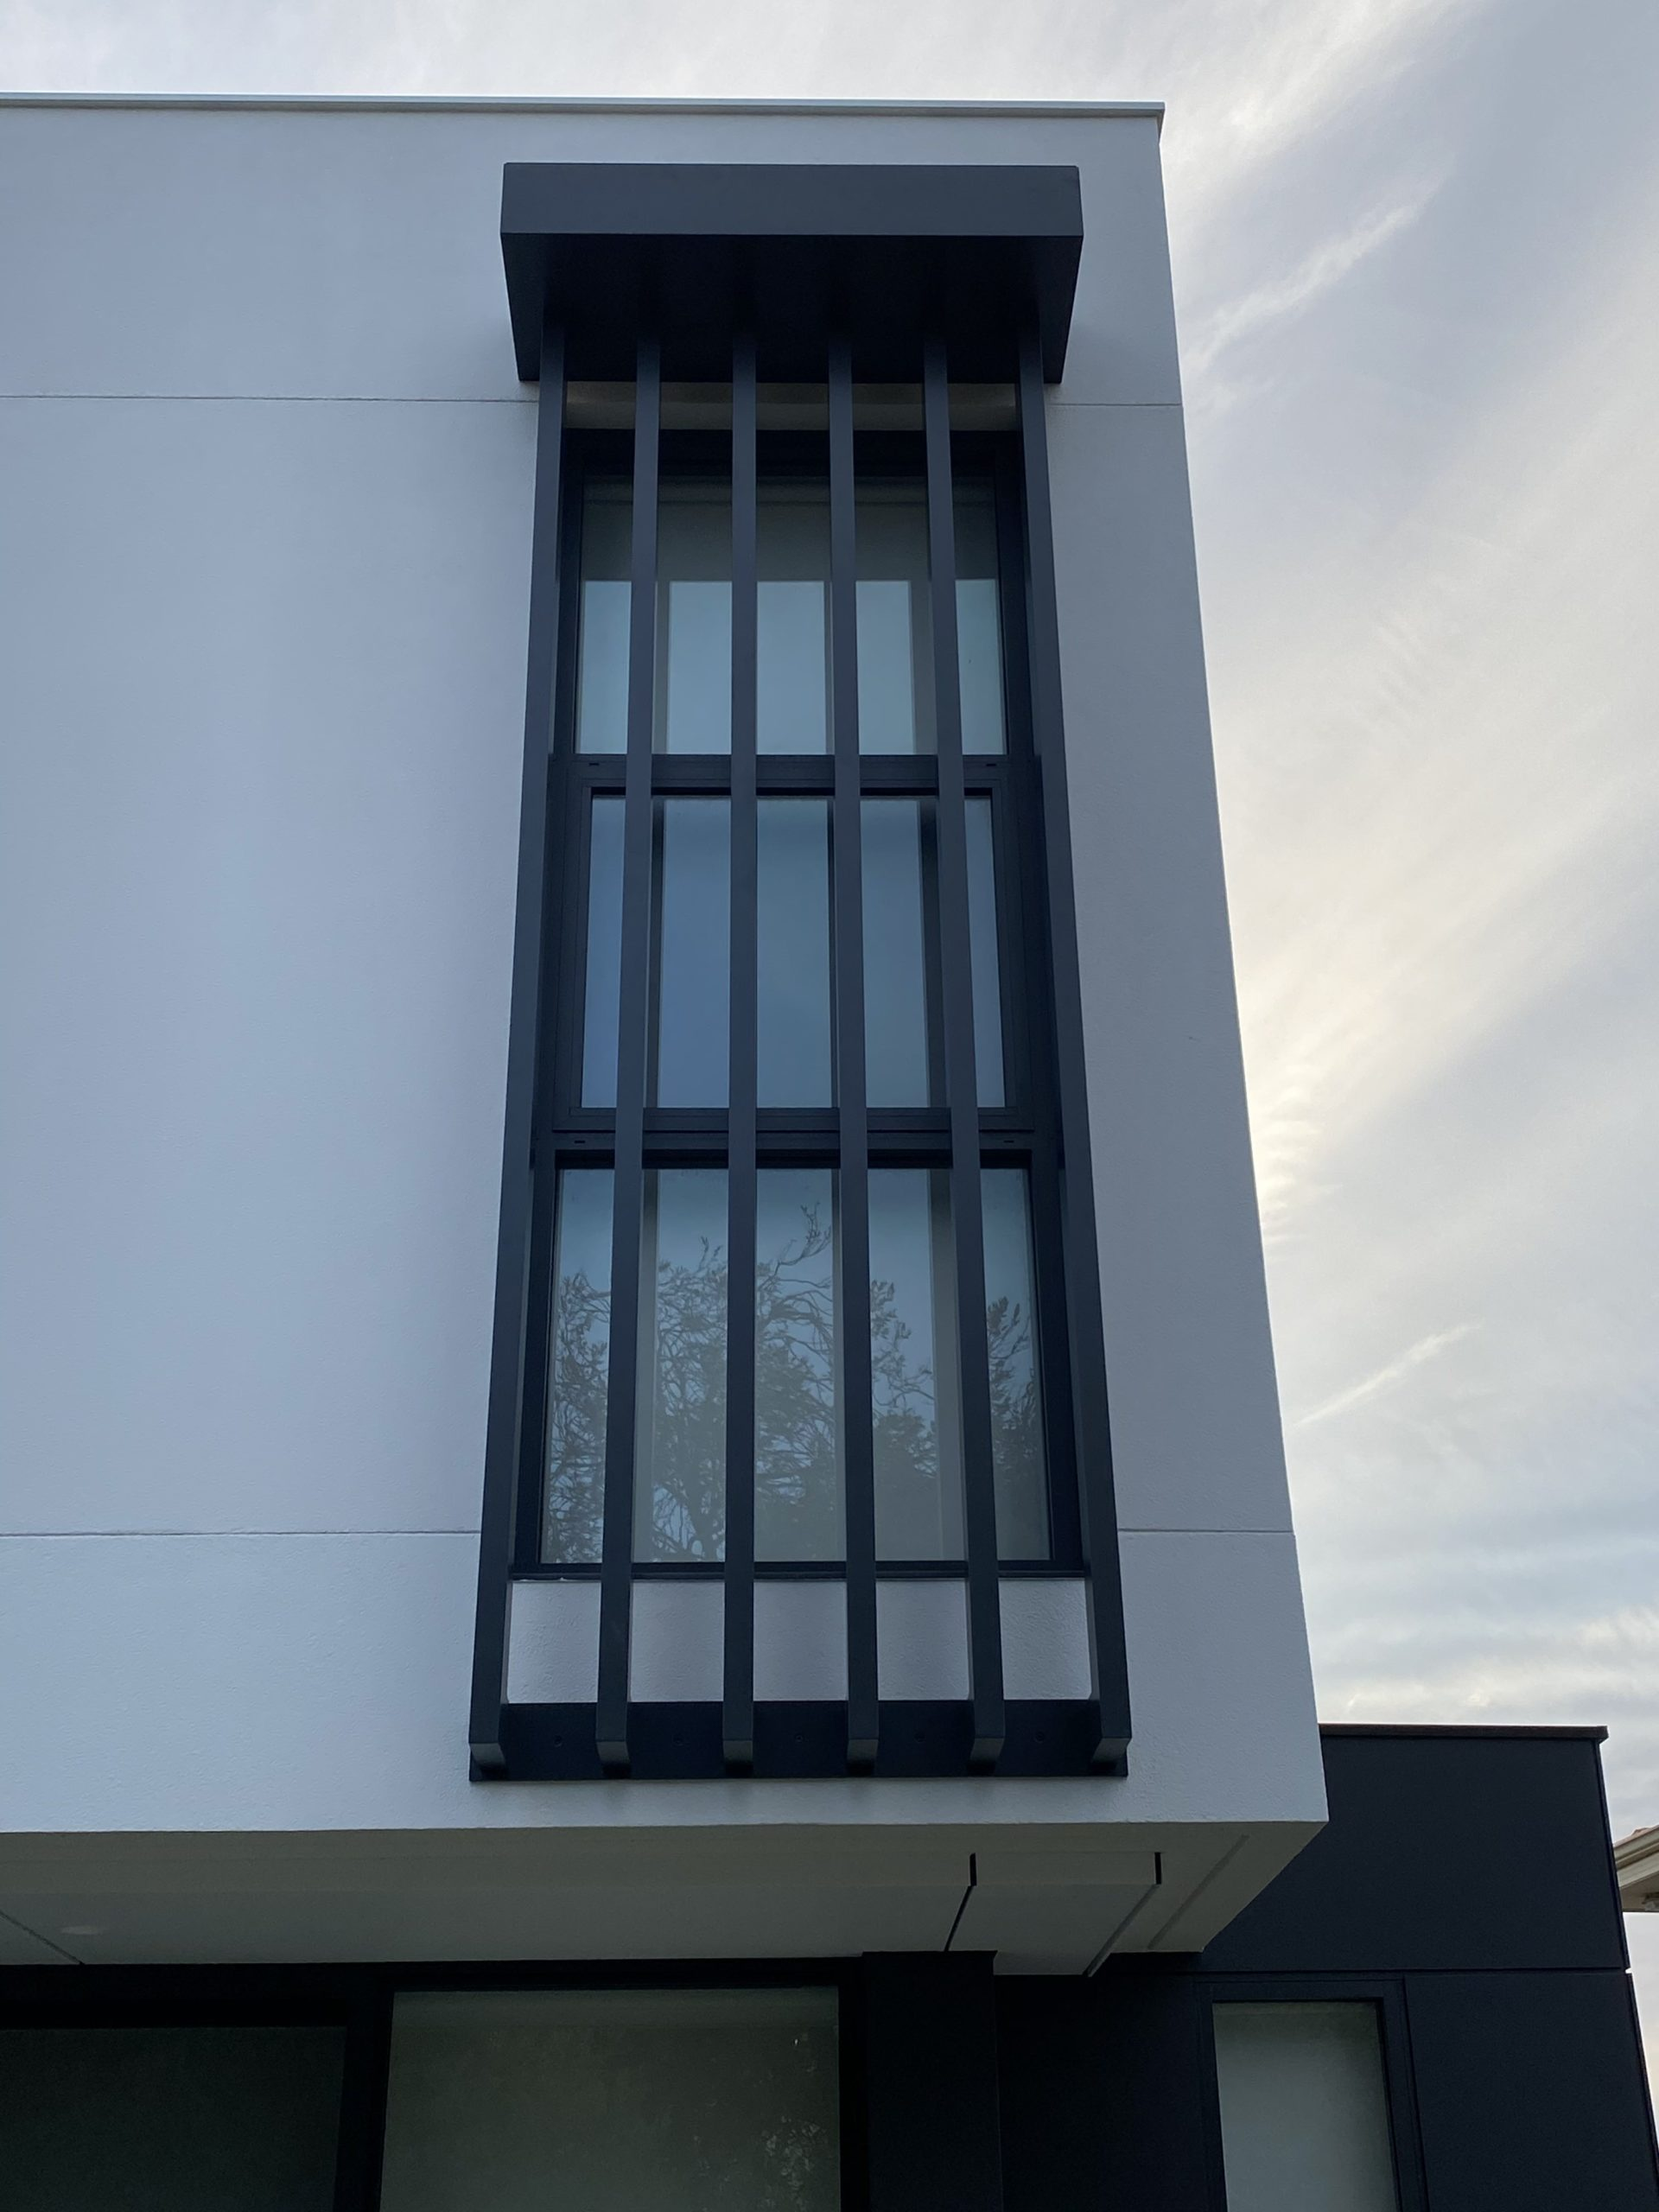 blade fence - black - window - awning - side